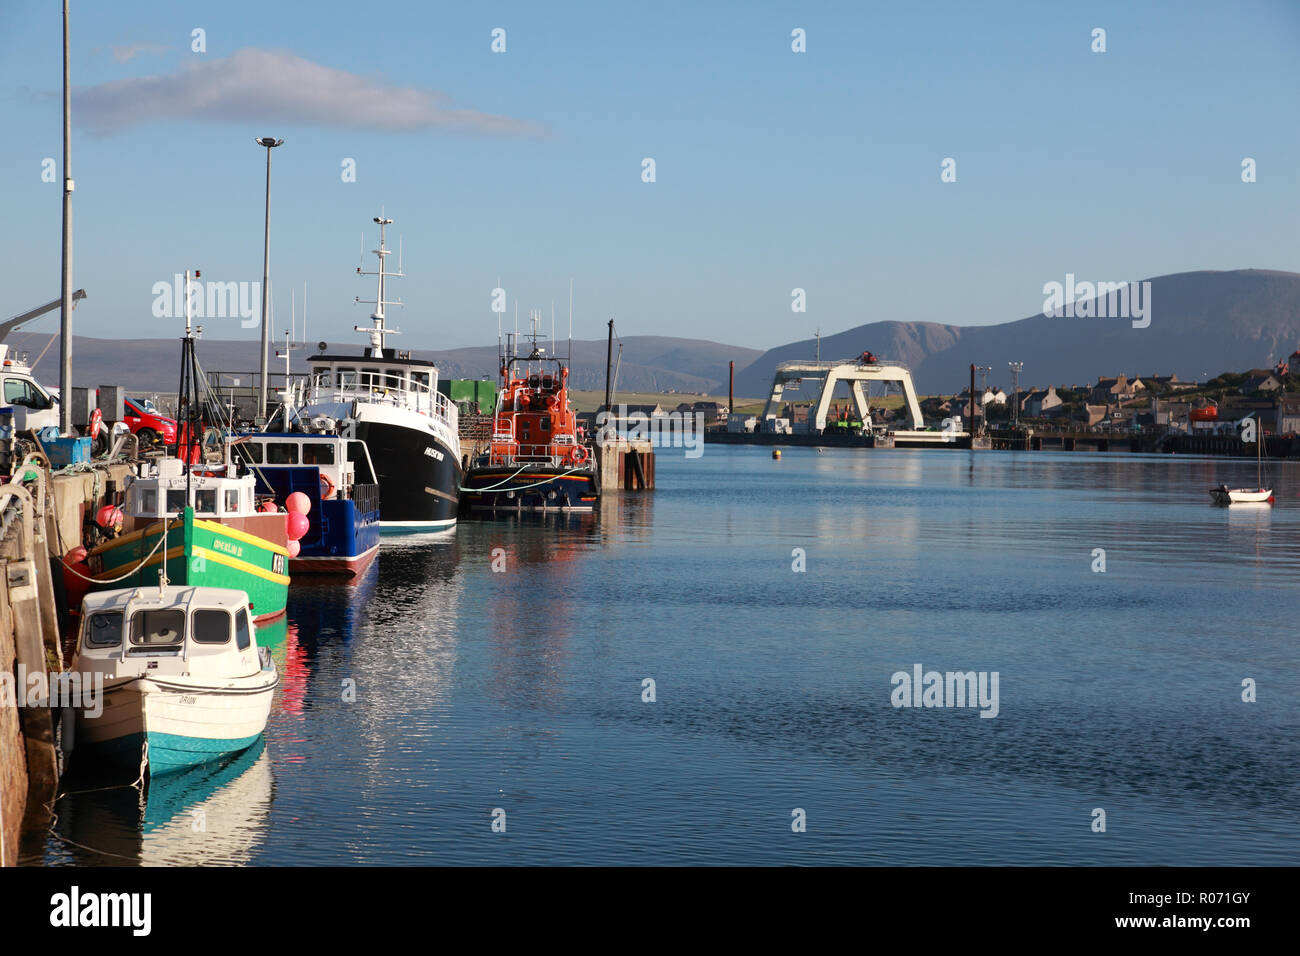 The harbour in Stromness, Orkney with fishing boats, the lifeboat and the hills of Hoy in the background - Stock Image